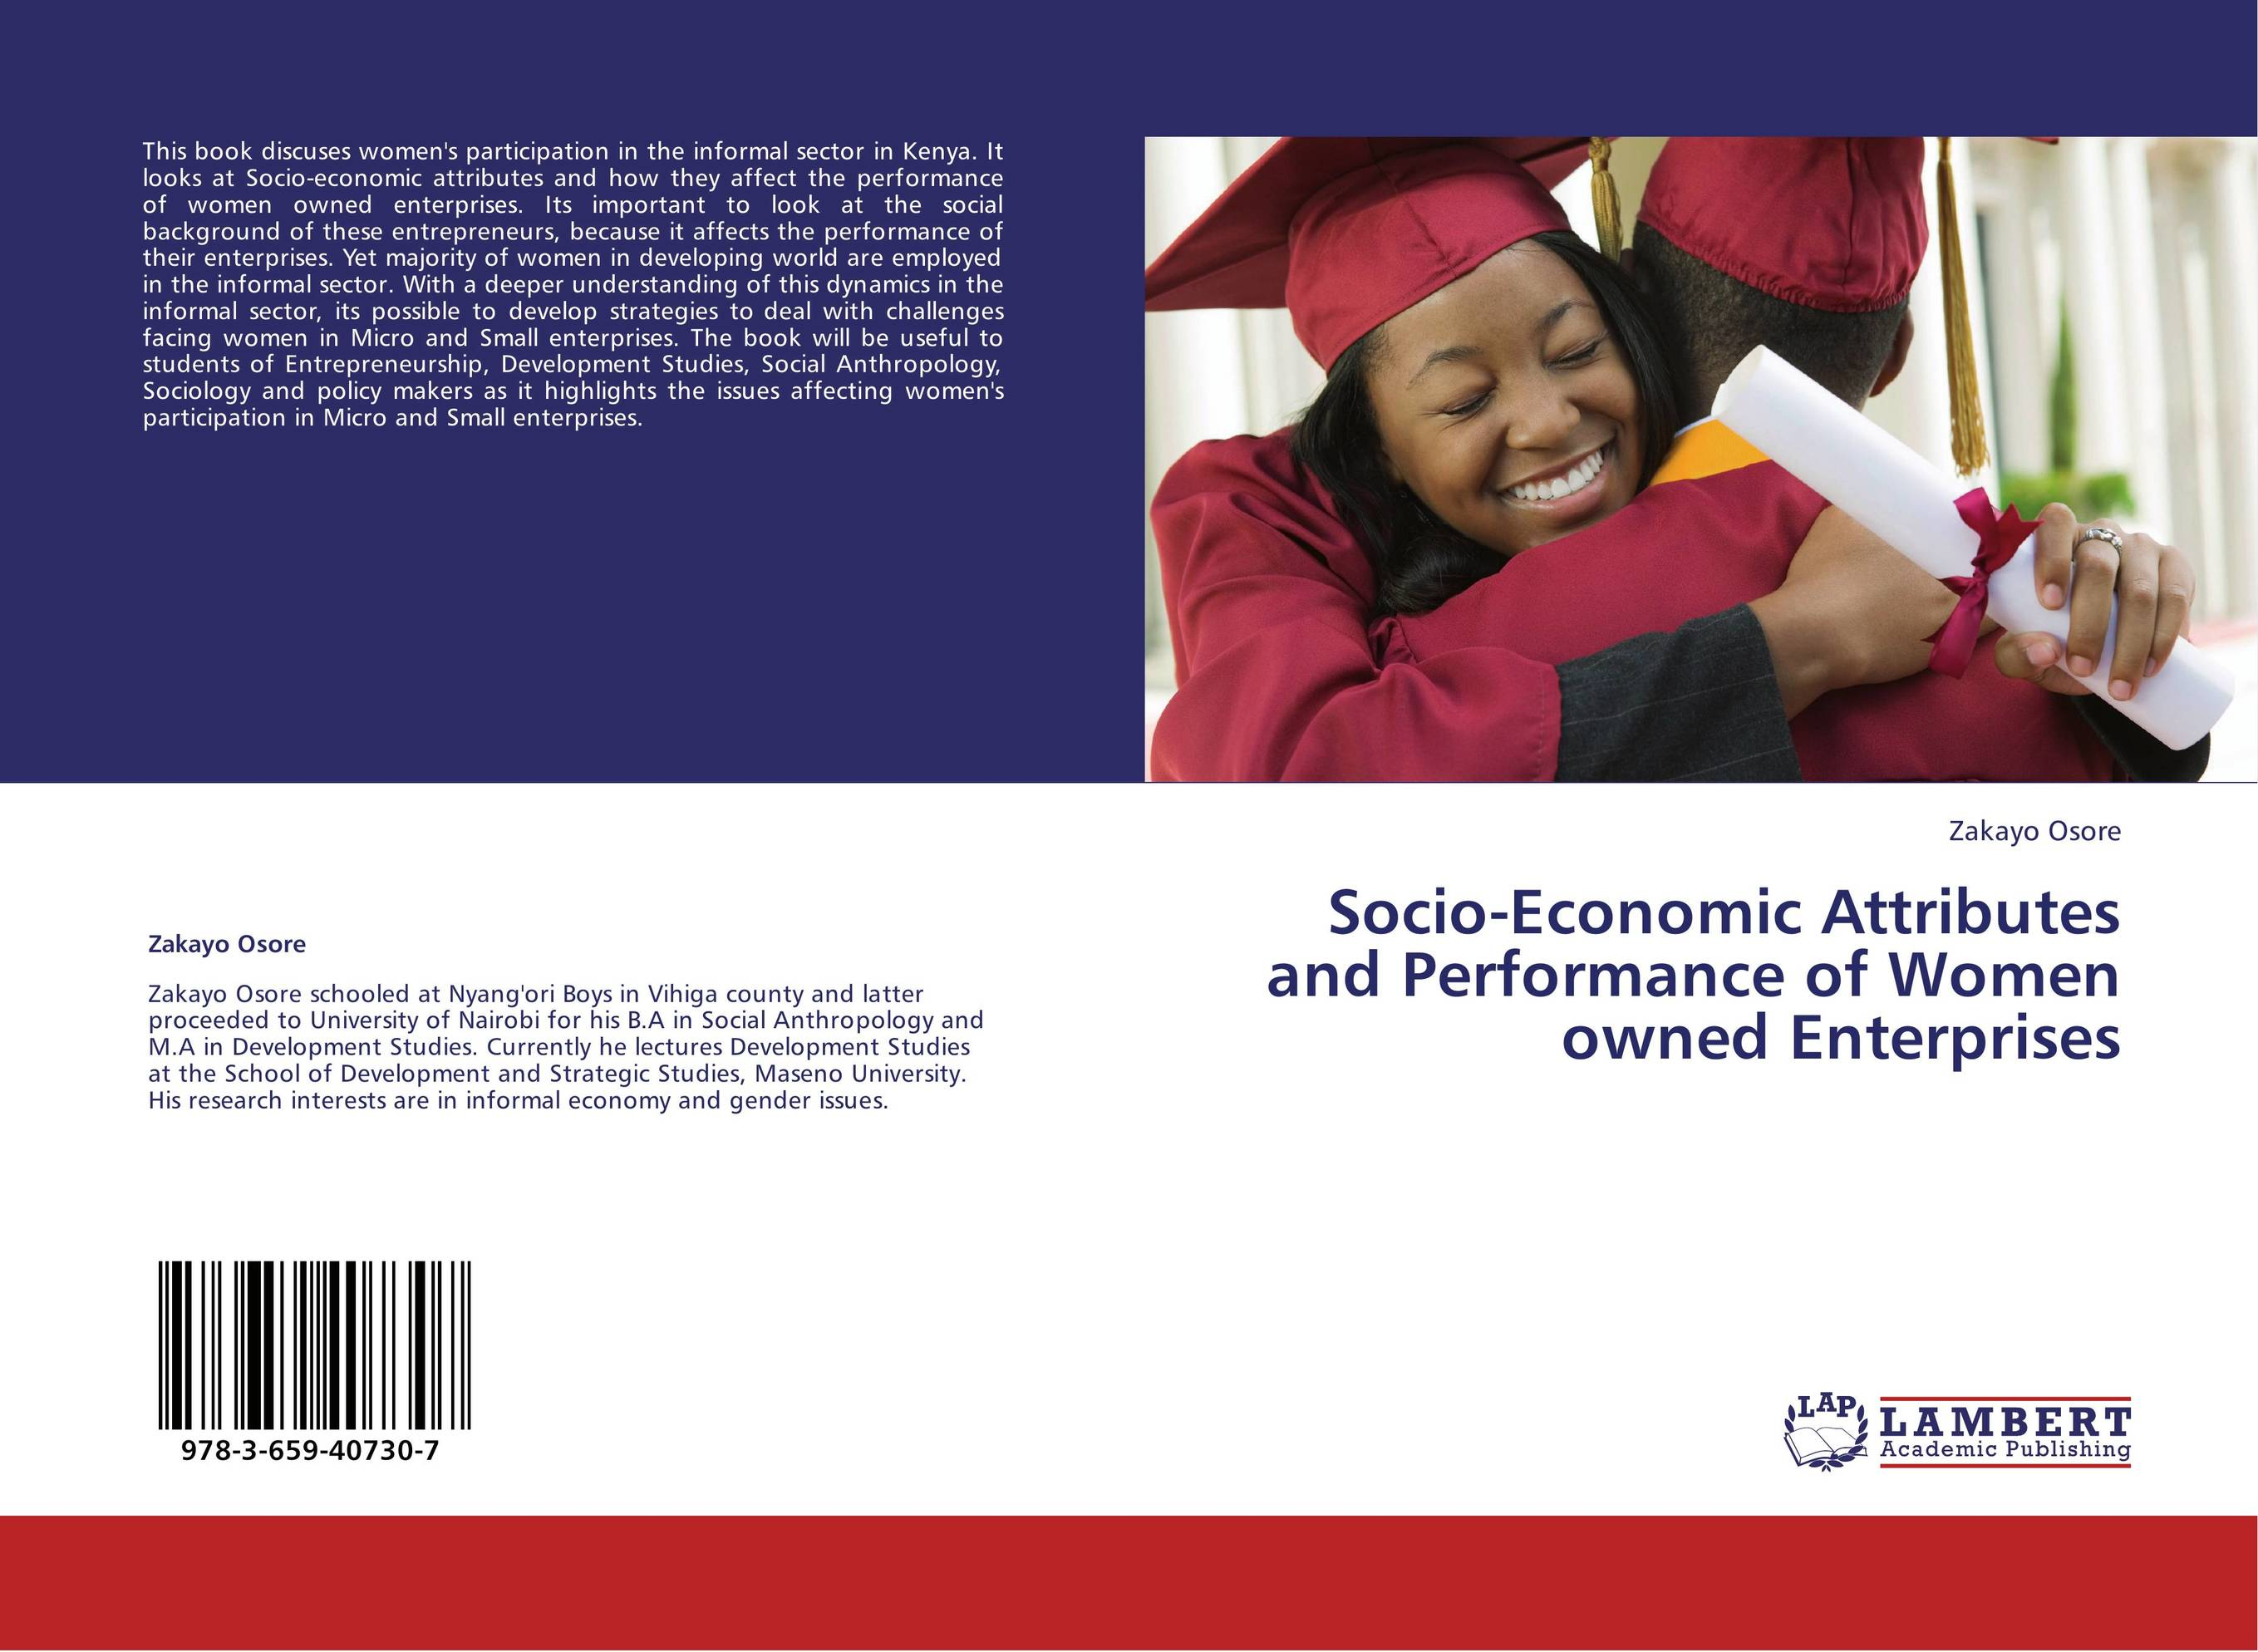 a socio economic study of informal sector Socio-economic study of a fermented drink dèguè made with milk and cereals in benin many elements show that the informal food sector.